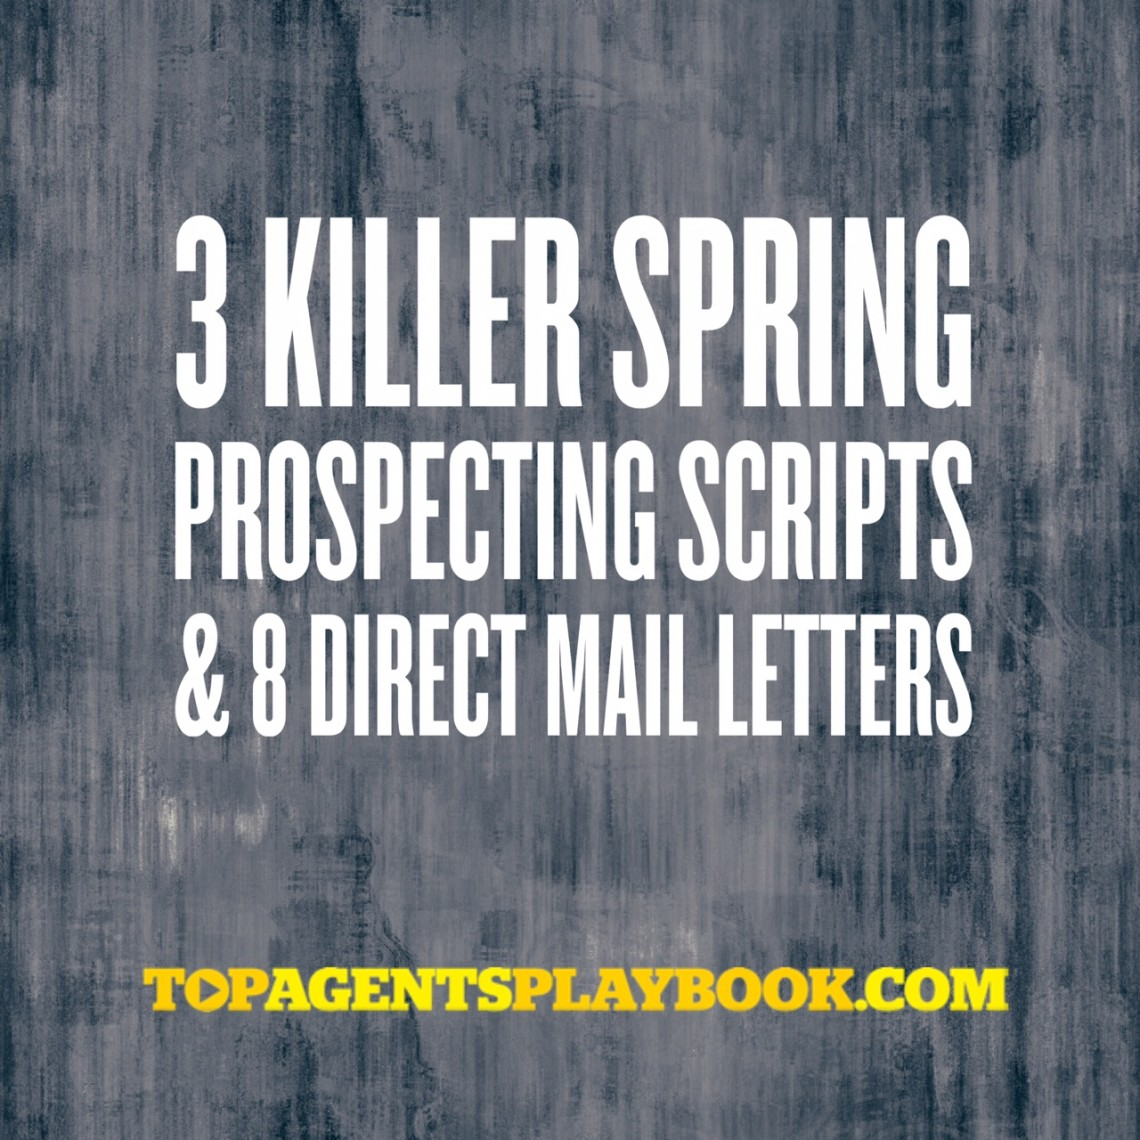 3 Killer Spring Prospecting Scripts 8 Direct Mail Letters